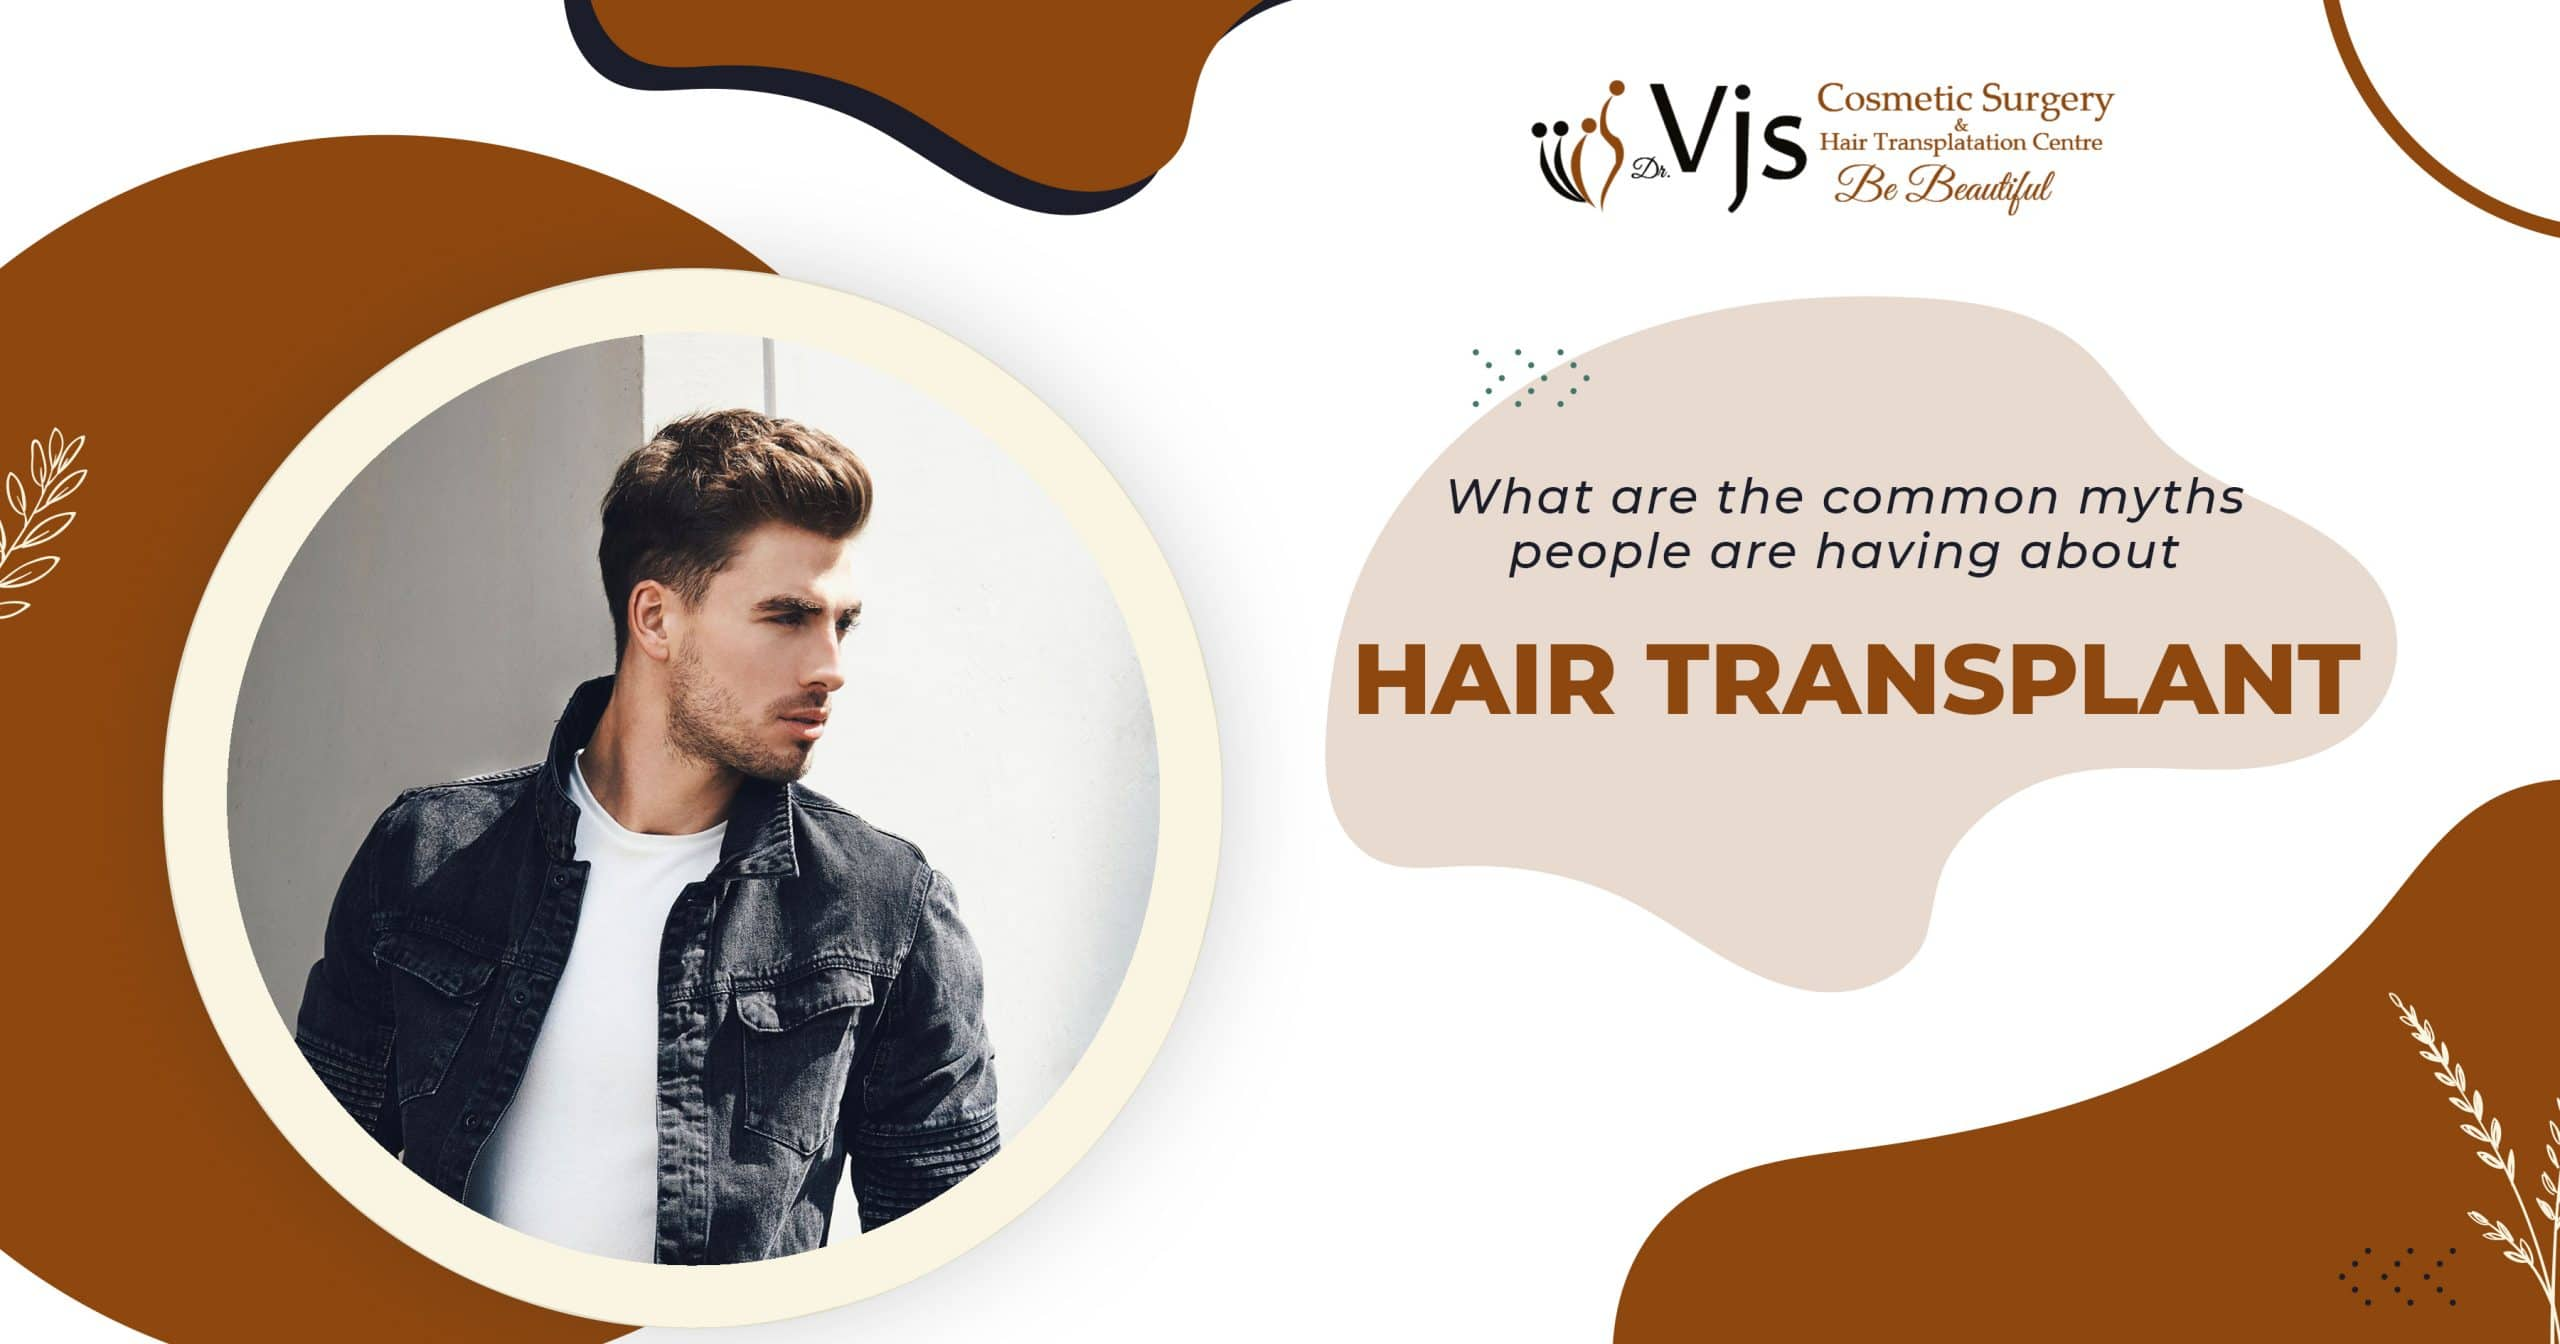 What are the common myths people are having about Hair transplant?